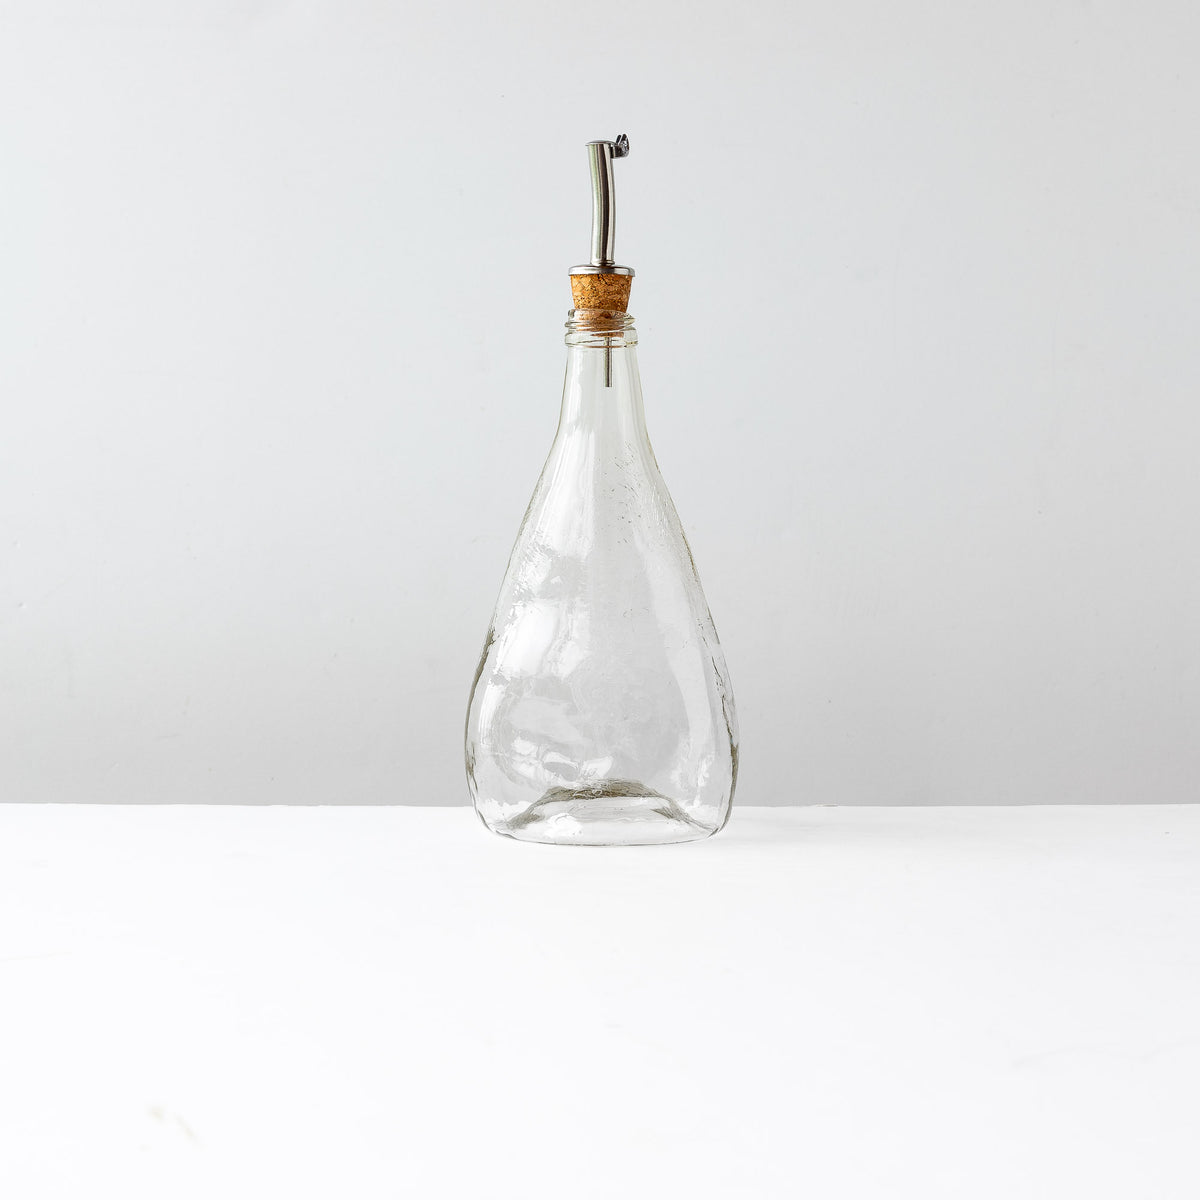 front View - Crackled Texture - Hand Blown Glass Oil Dispenser Bottle - Sold by Chic & Basta